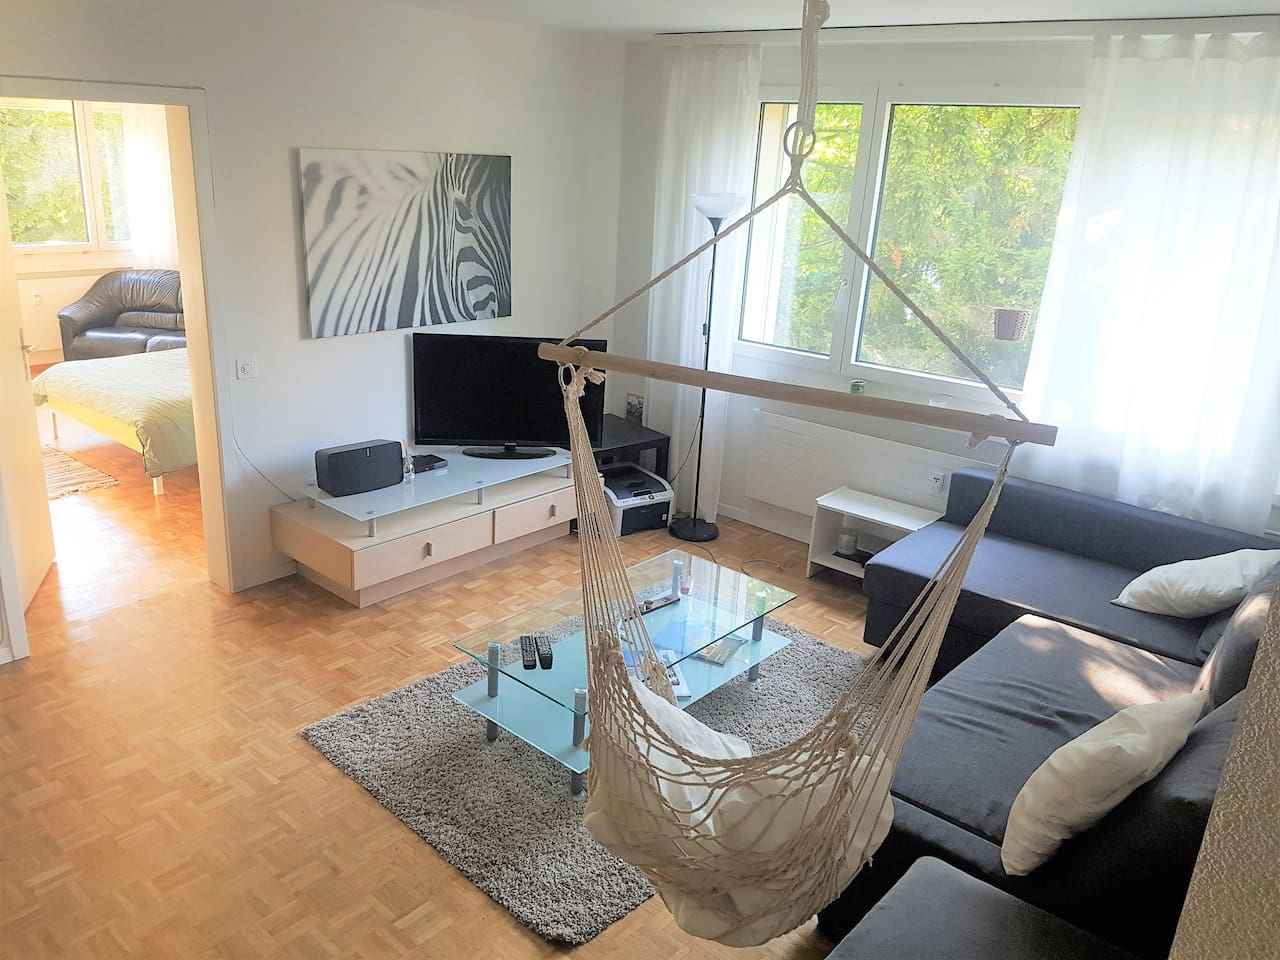 Our bright shared living room